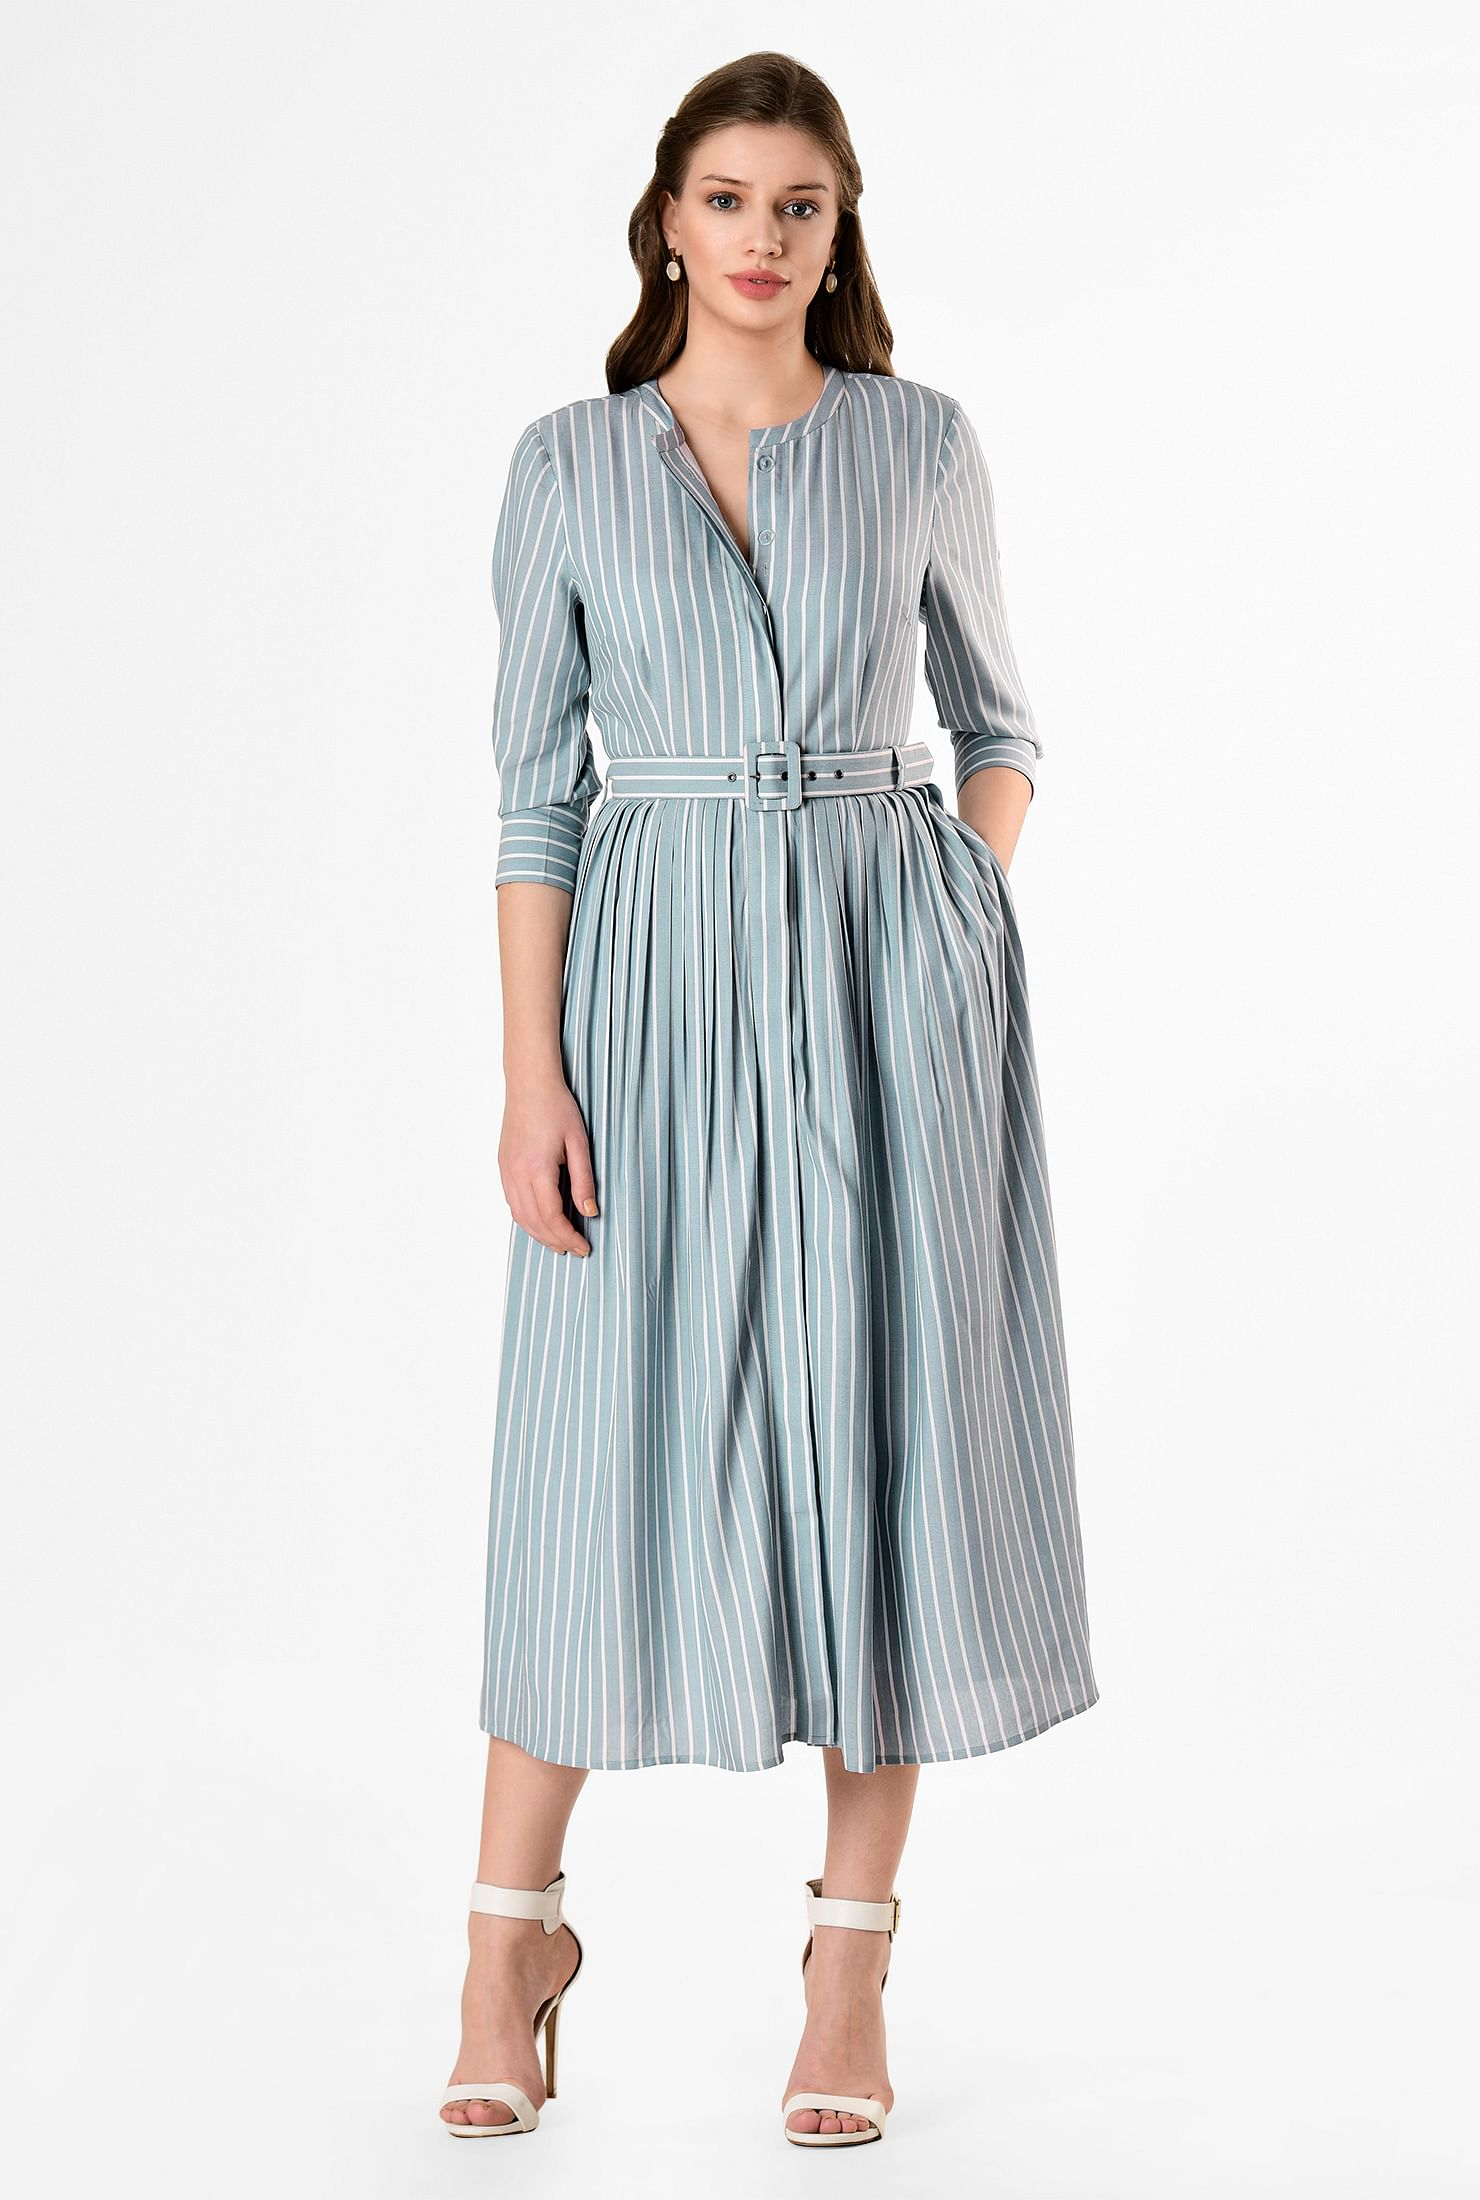 Stripe cotton chambray belted shirtdress